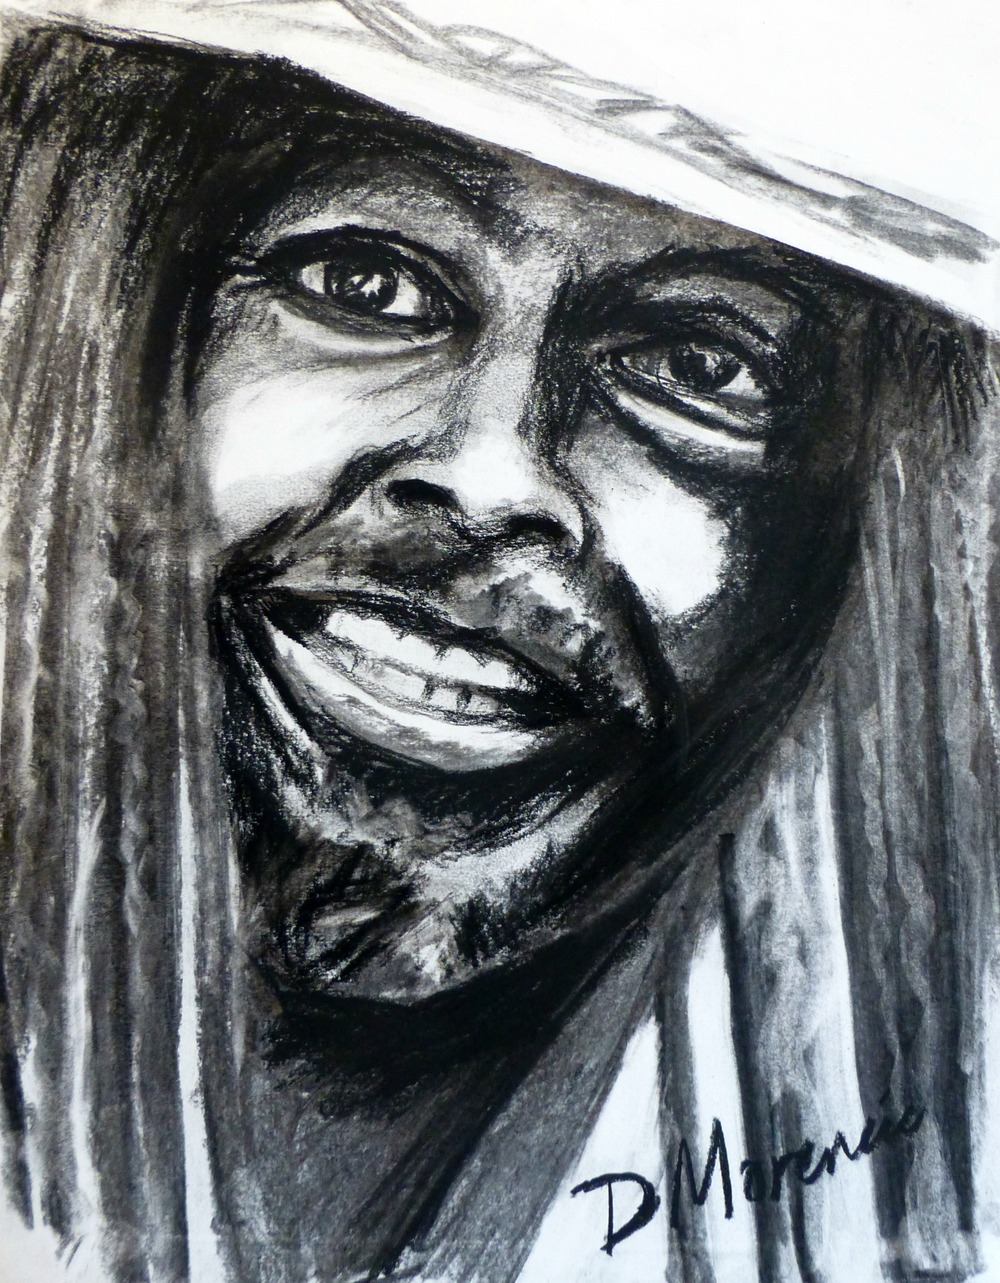 nwm - Sketch - Musician with Dreads.jpg